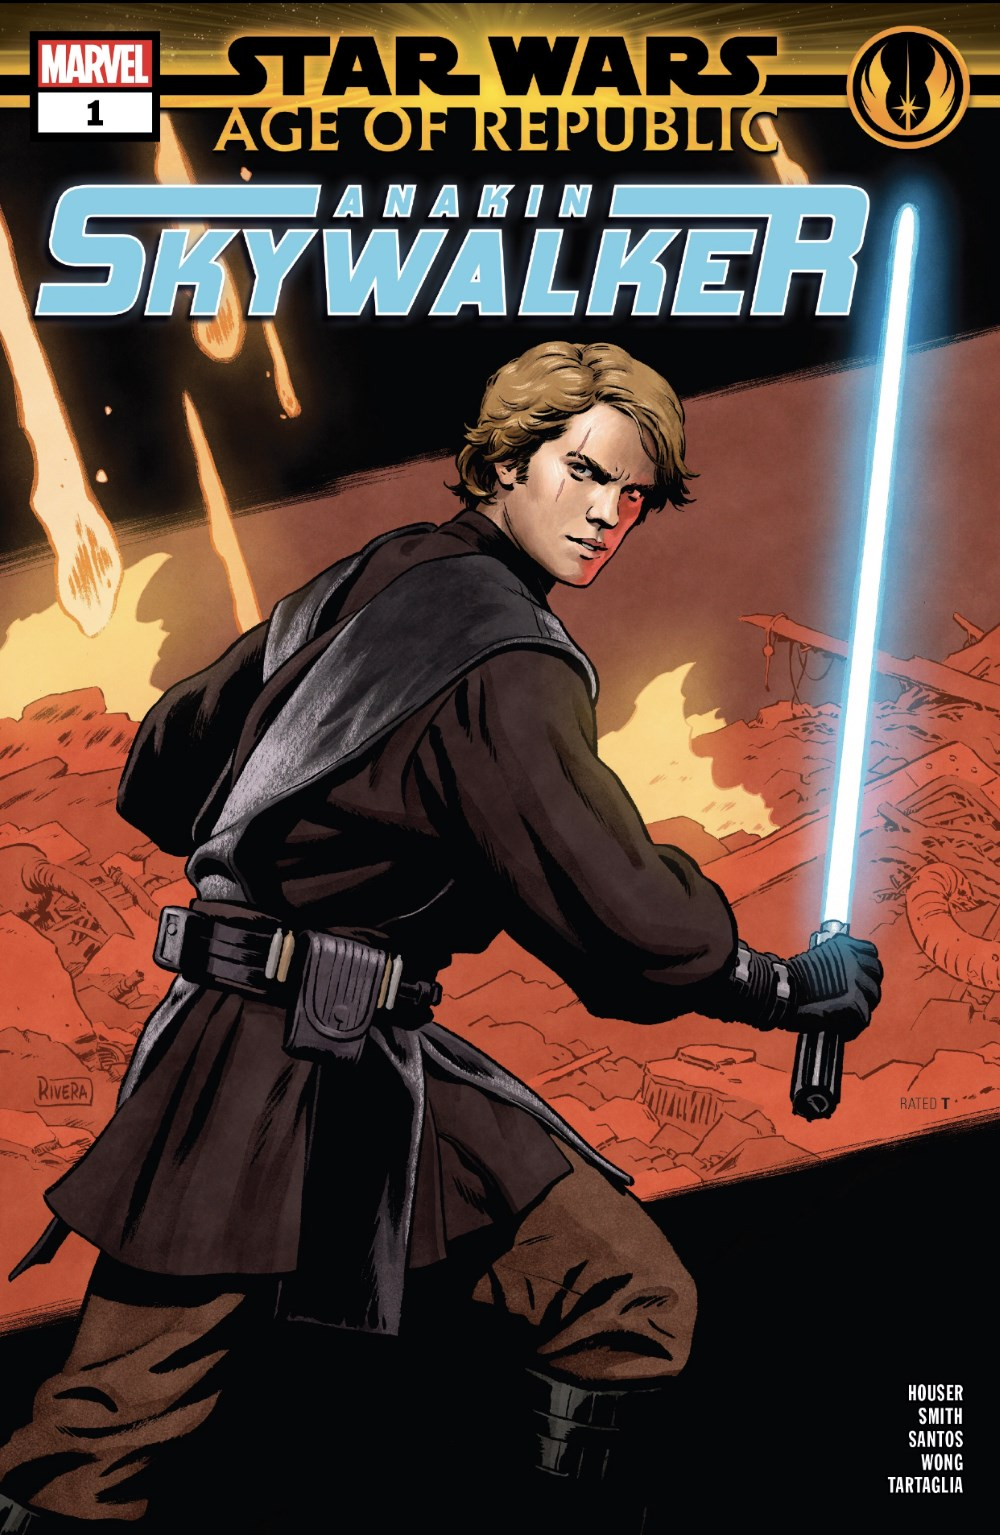 Star Wars: Age of Republic Anakin Skywalker #1 Cover